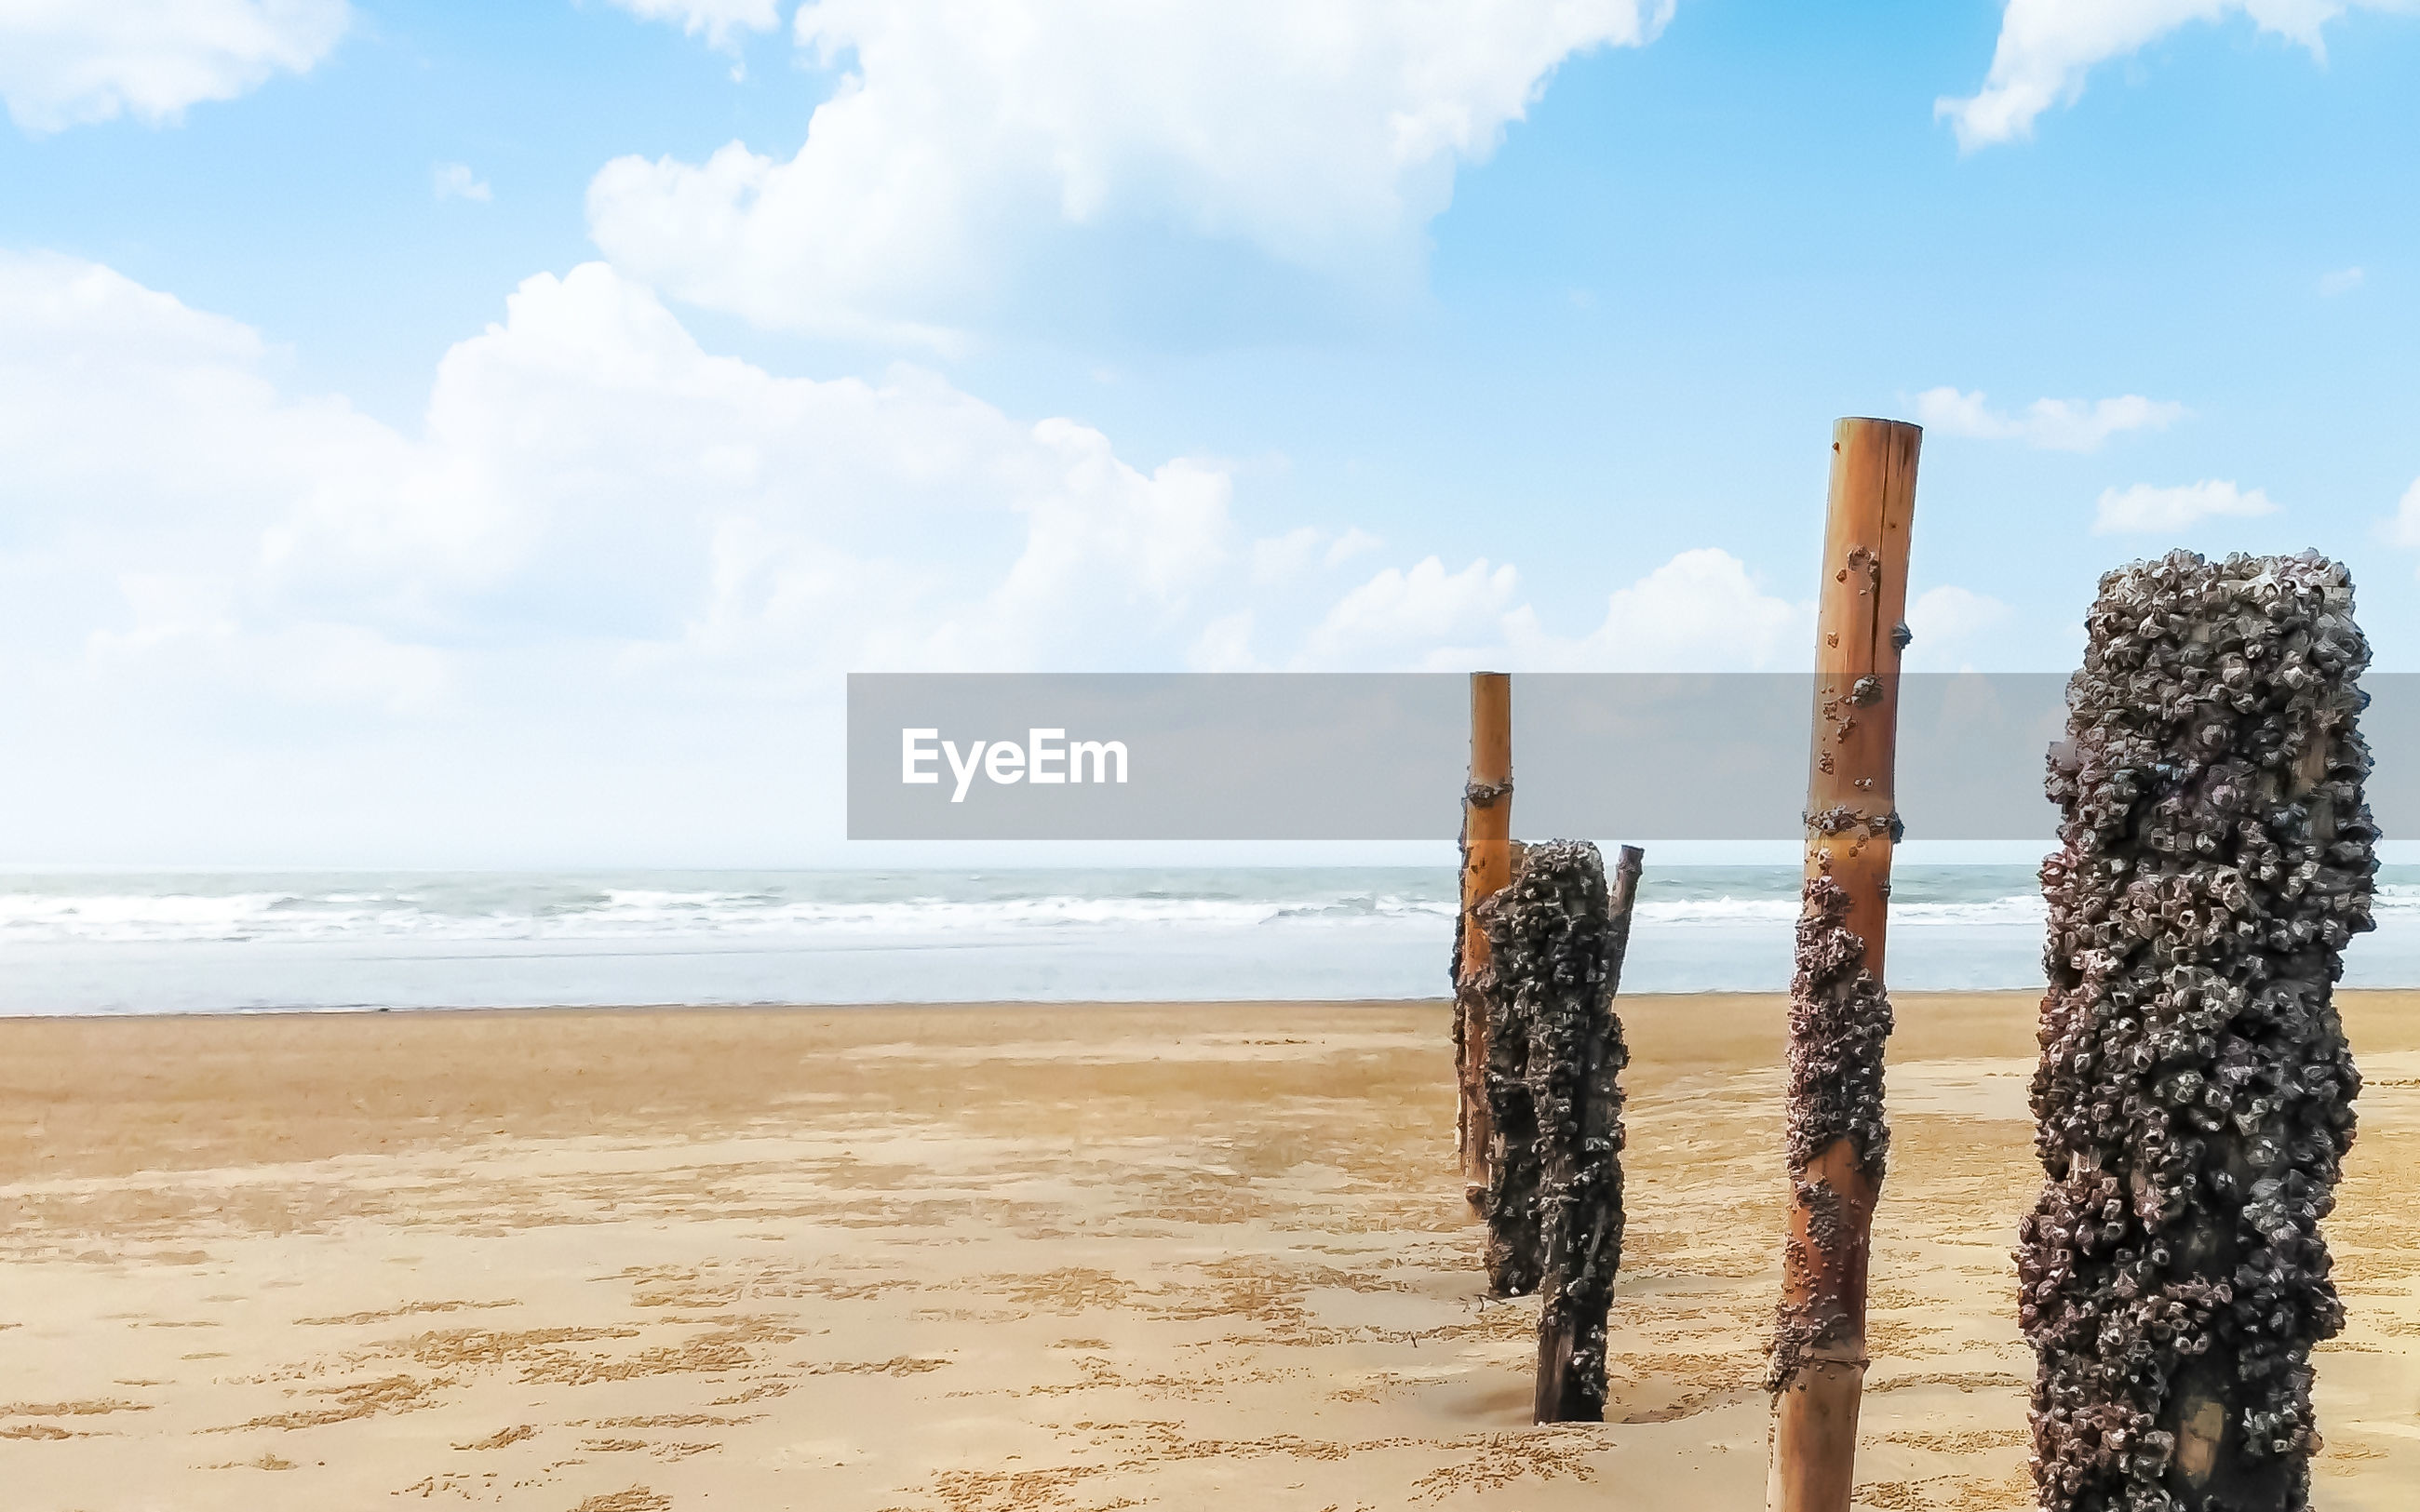 PANORAMIC VIEW OF WOODEN POSTS ON BEACH AGAINST SKY